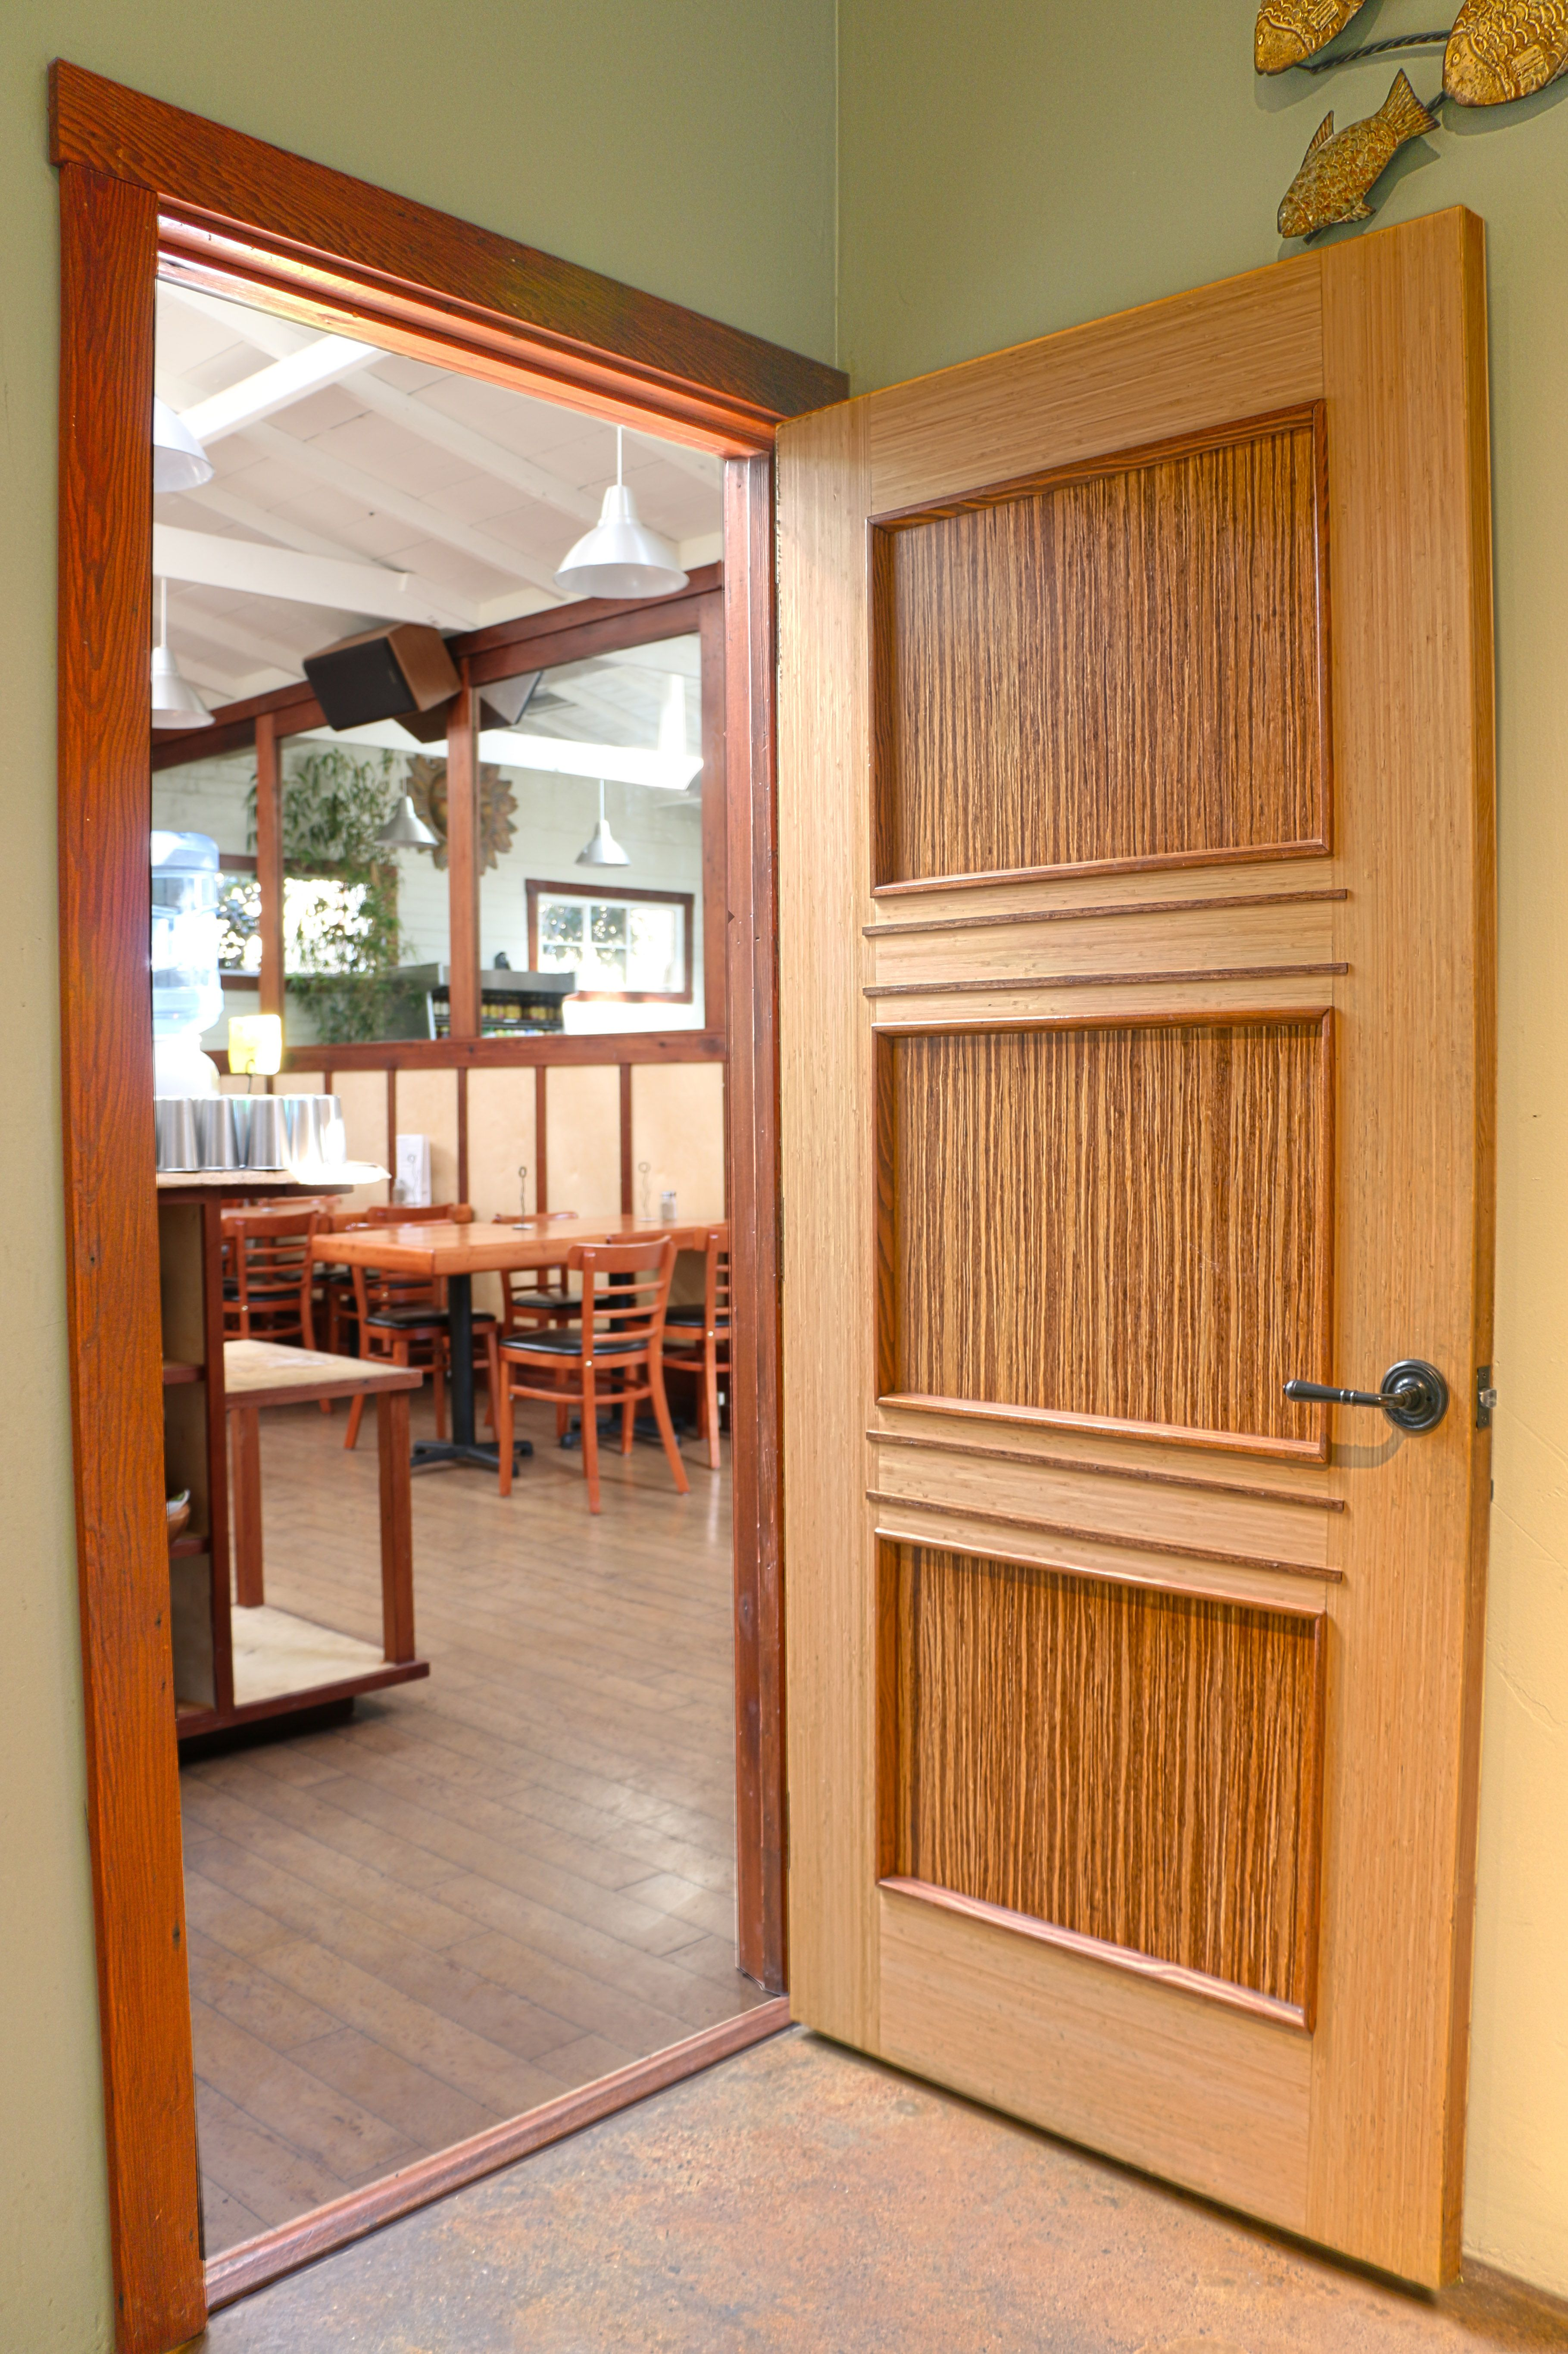 Green Leaf Bamboo Door Install In A Local Organic Cafe With